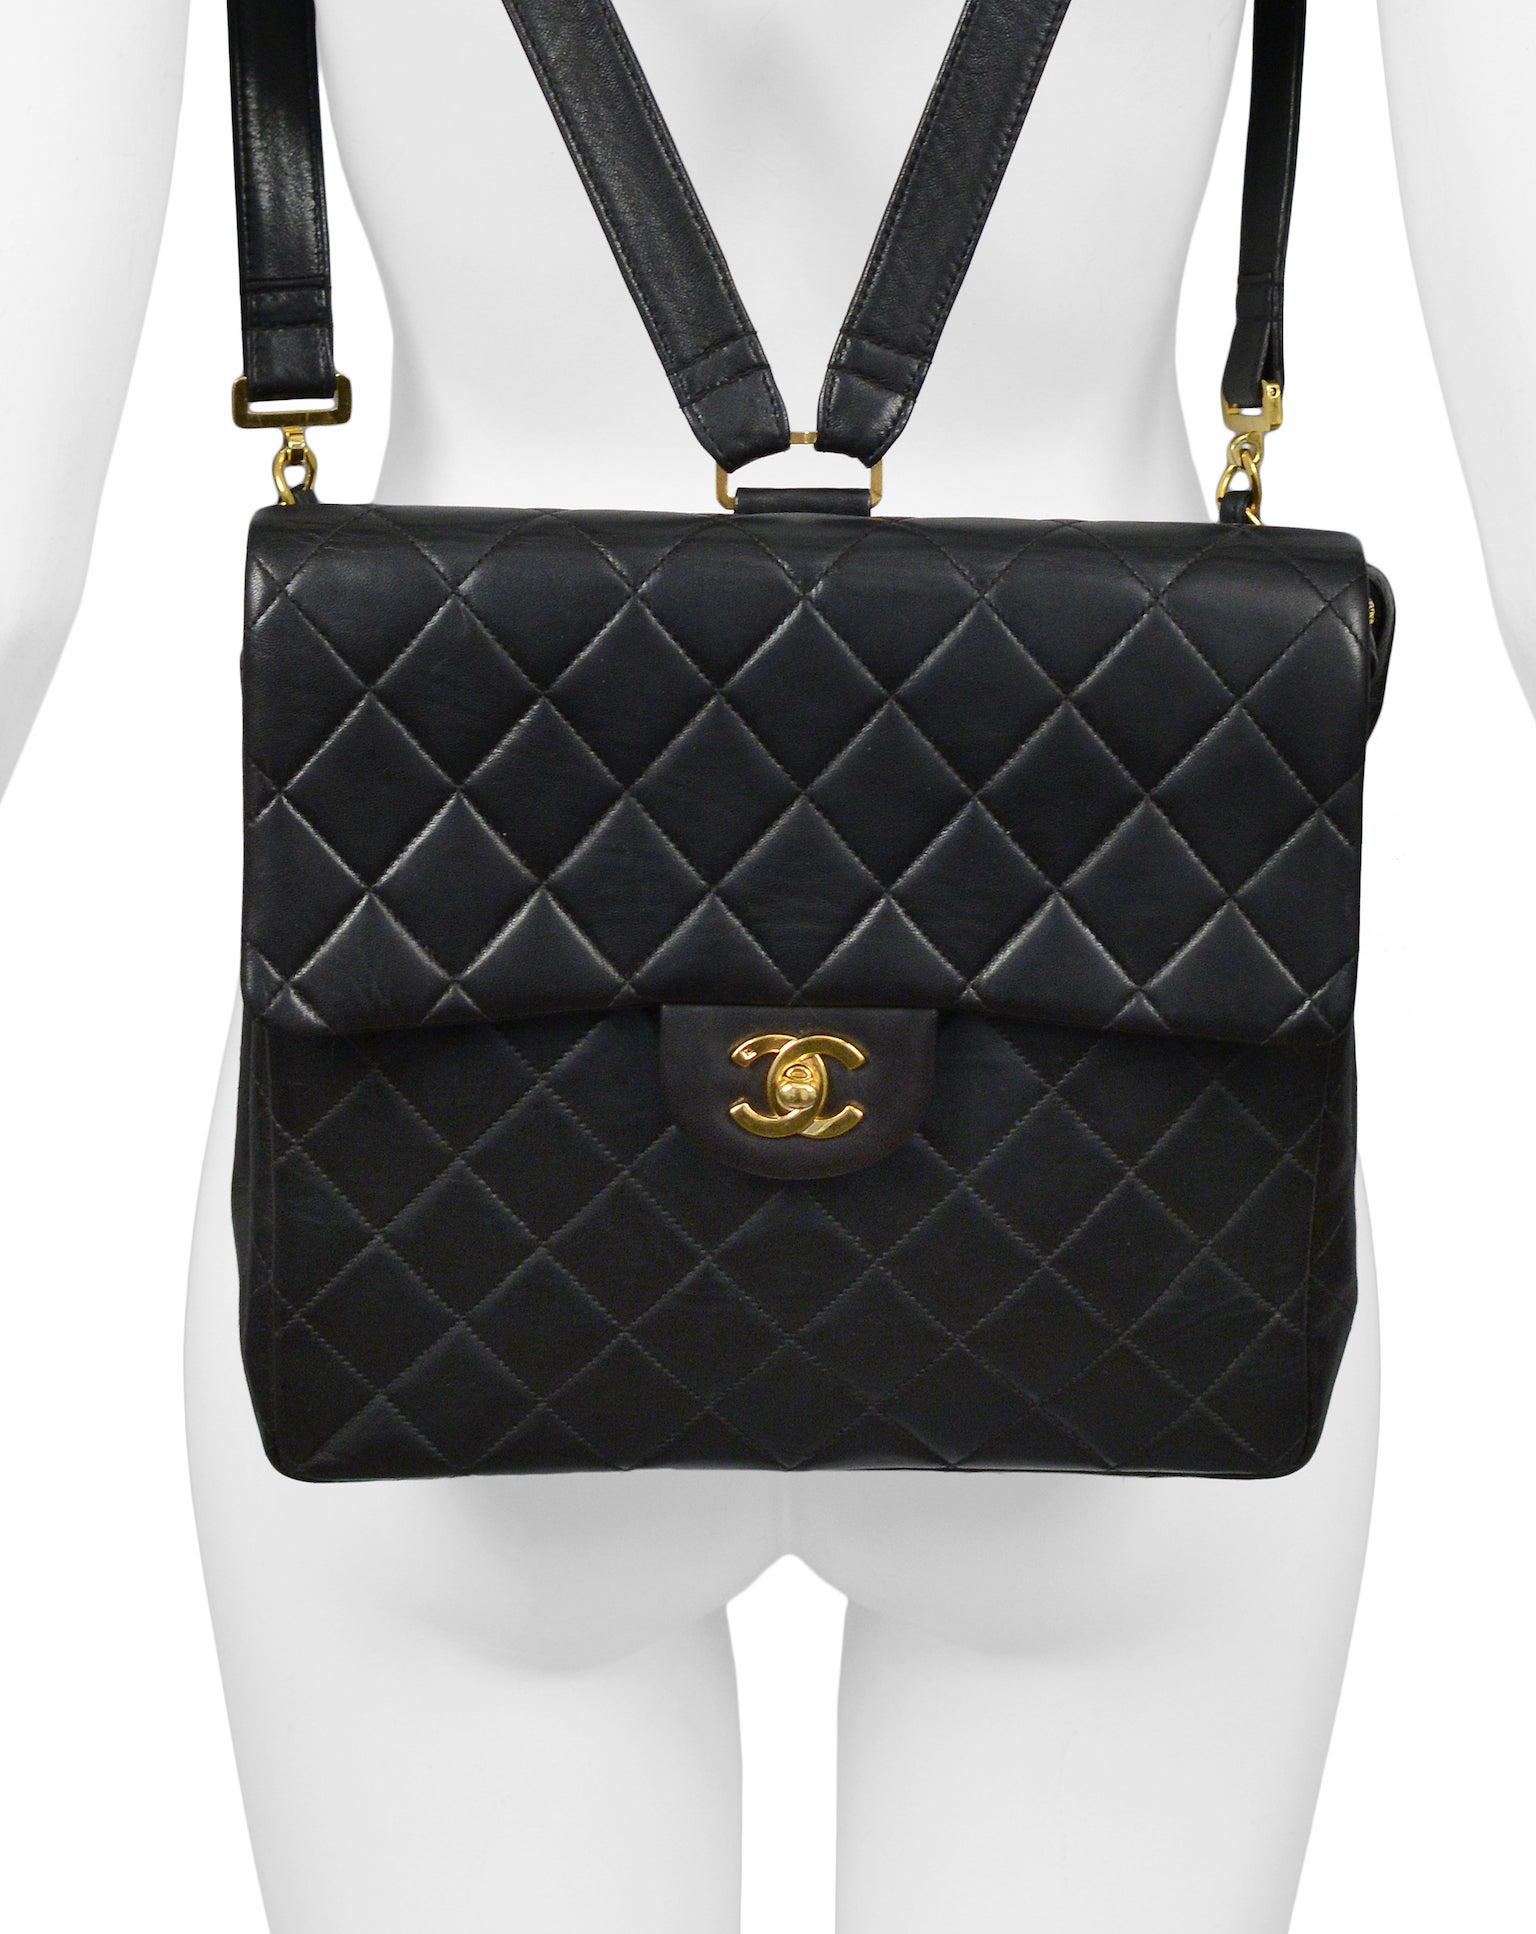 4f0818160b4b Unusual Chanel Square Quilted Black Leather Backpack Bag With Chain Straps  at 1stdibs